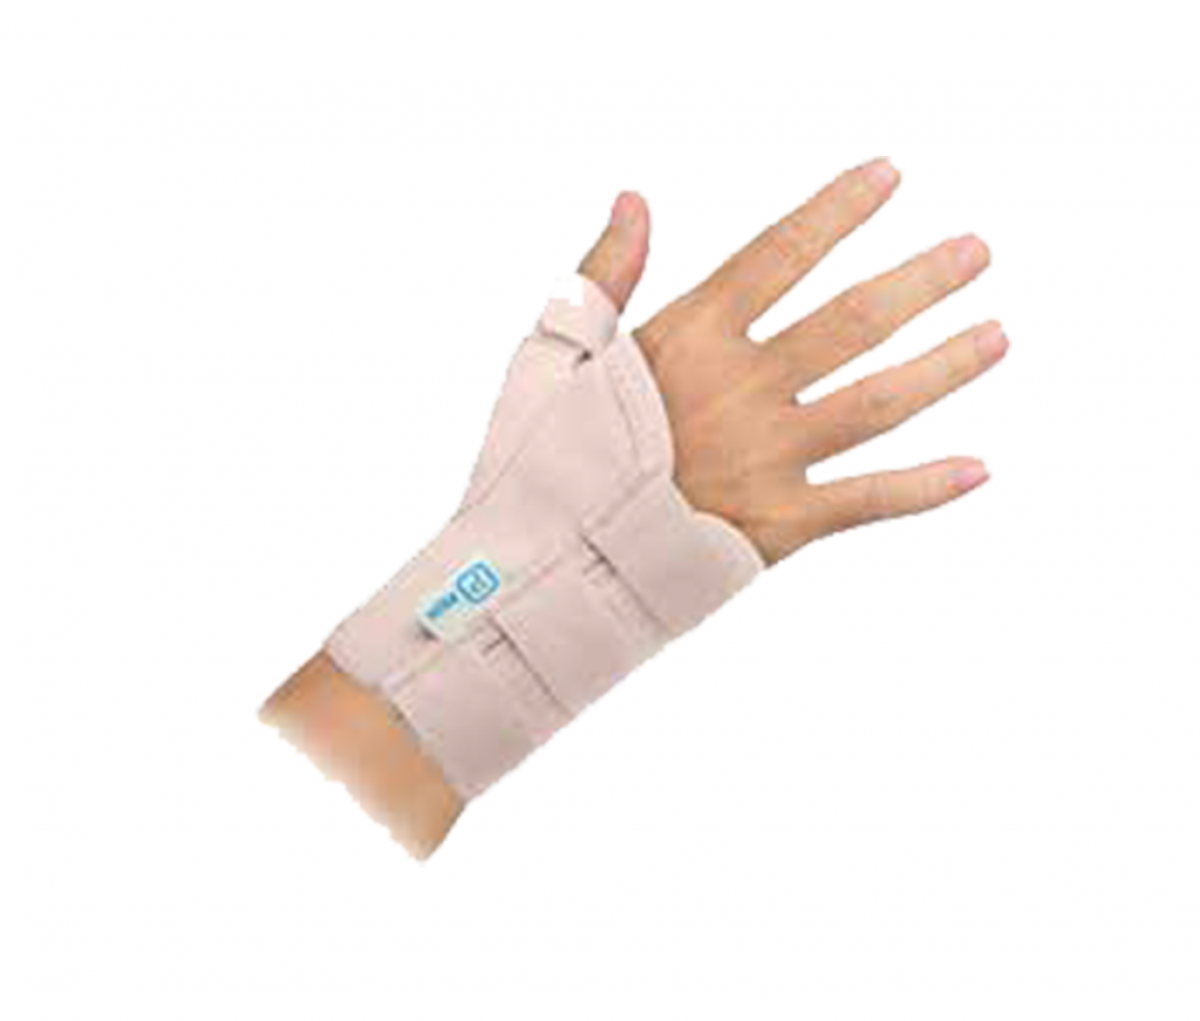 SHORT WRIST SUPPORT WITH THUMB (13CM) - MR C700